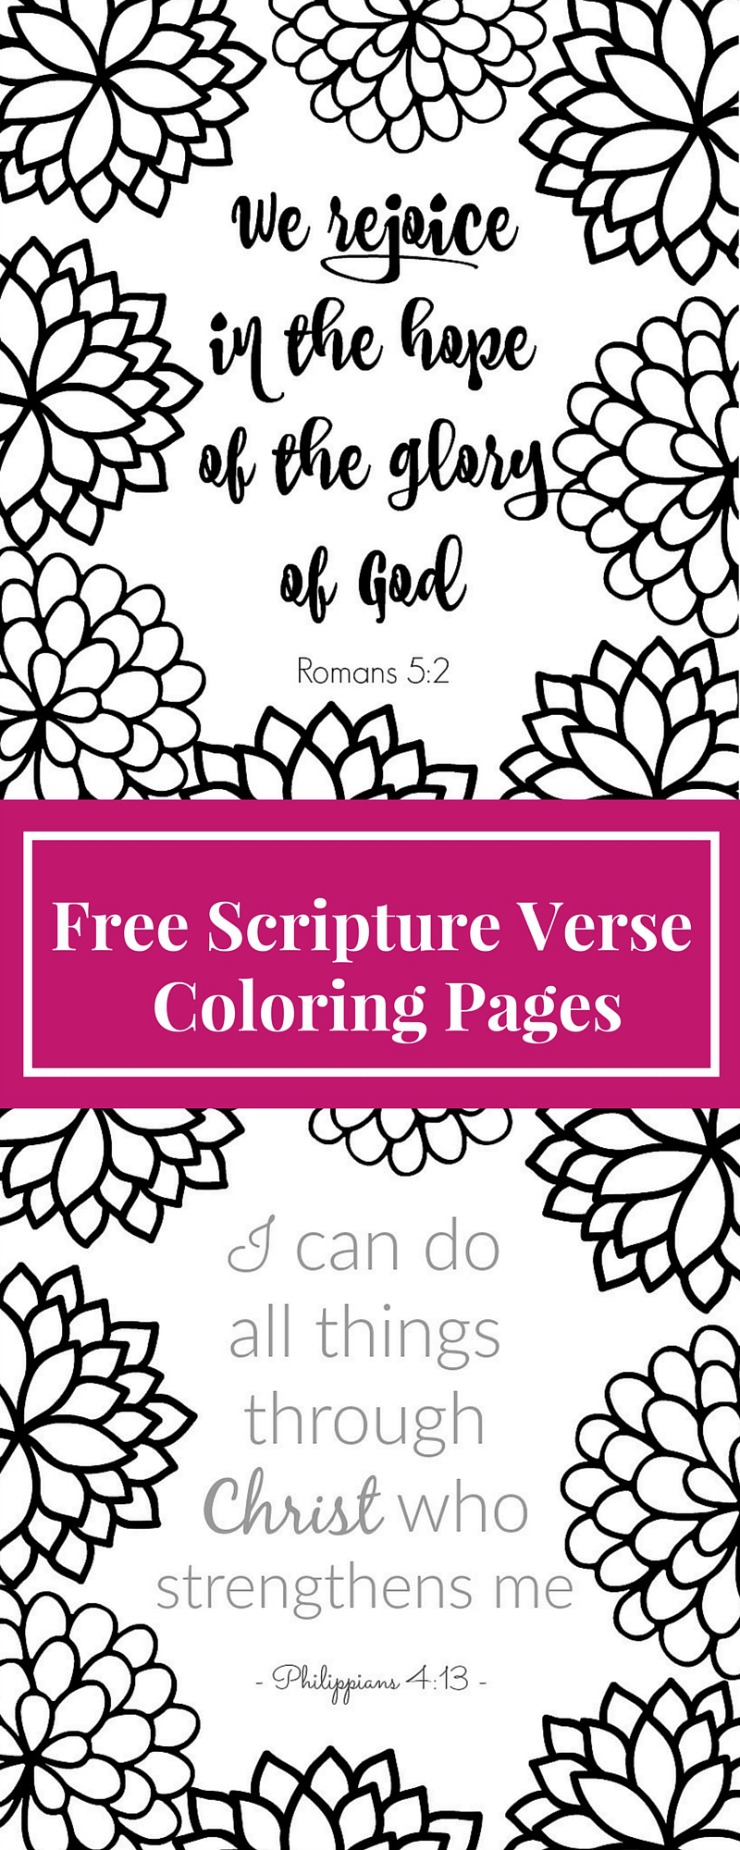 Free coloring pages bible - I Just Got Into Coloring Pages Again As A Grown Up These Bible Verse Coloring